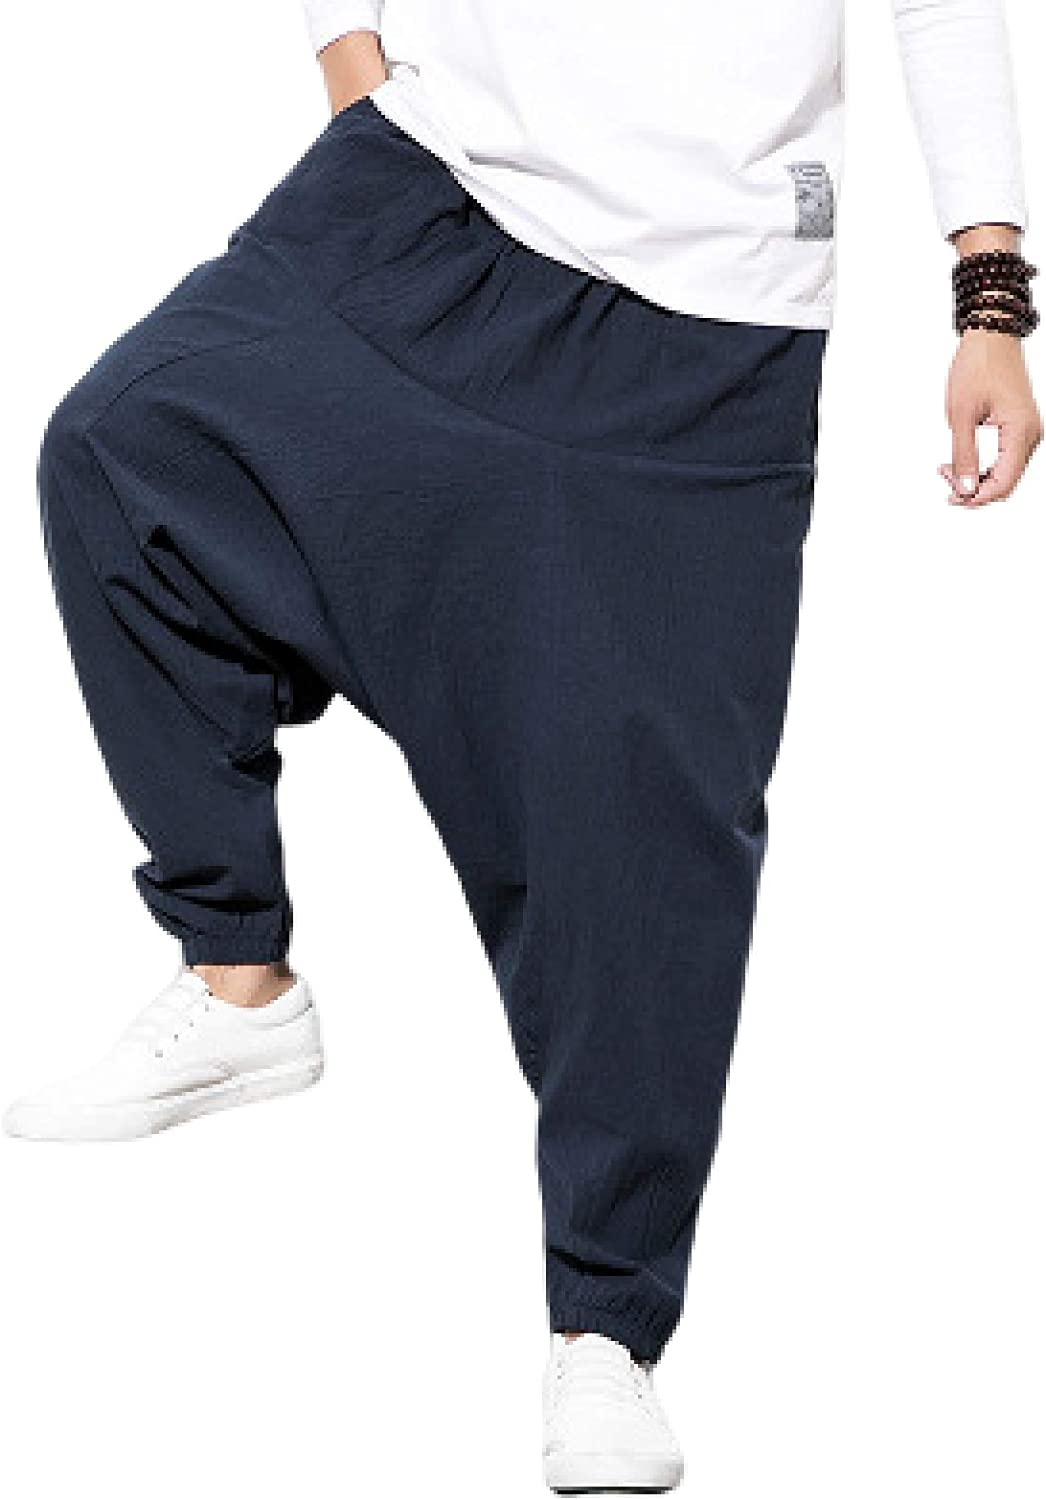 Huntrly Challenge the lowest price Men's Free shipping anywhere in the nation Printed Baggy Harem Pants Pocket Drawstring with W